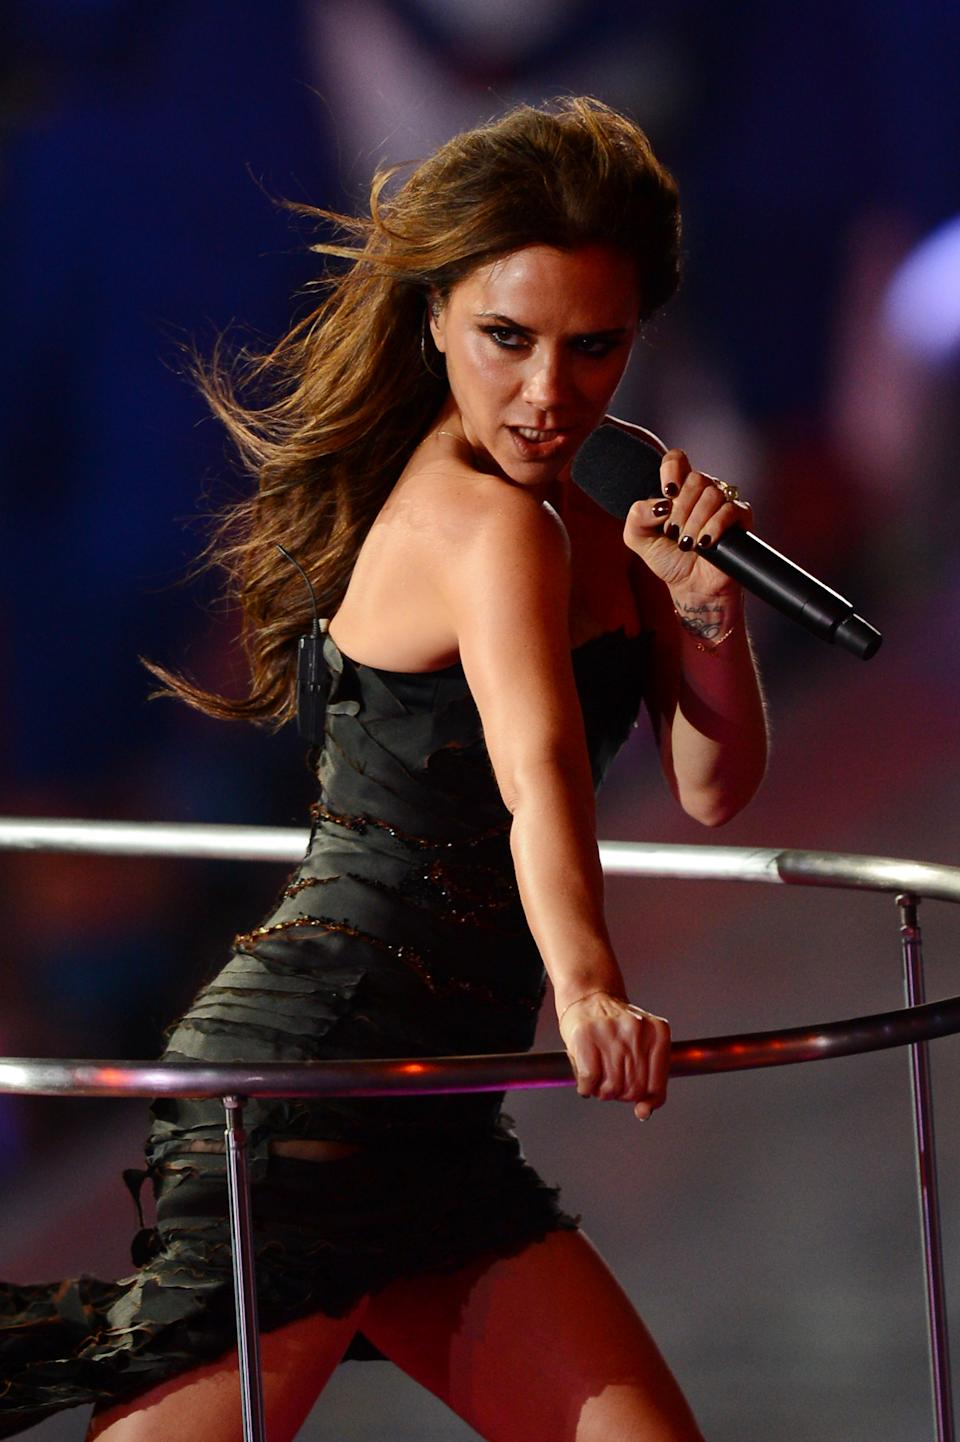 NOW: Victoria Beckham of the Spice Girls performs during the Closing Ceremony on Day 16 of the London 2012 Olympic Games at Olympic Stadium on August 12, 2012 in London, England. (Photo by Mike Hewitt/Getty Images)